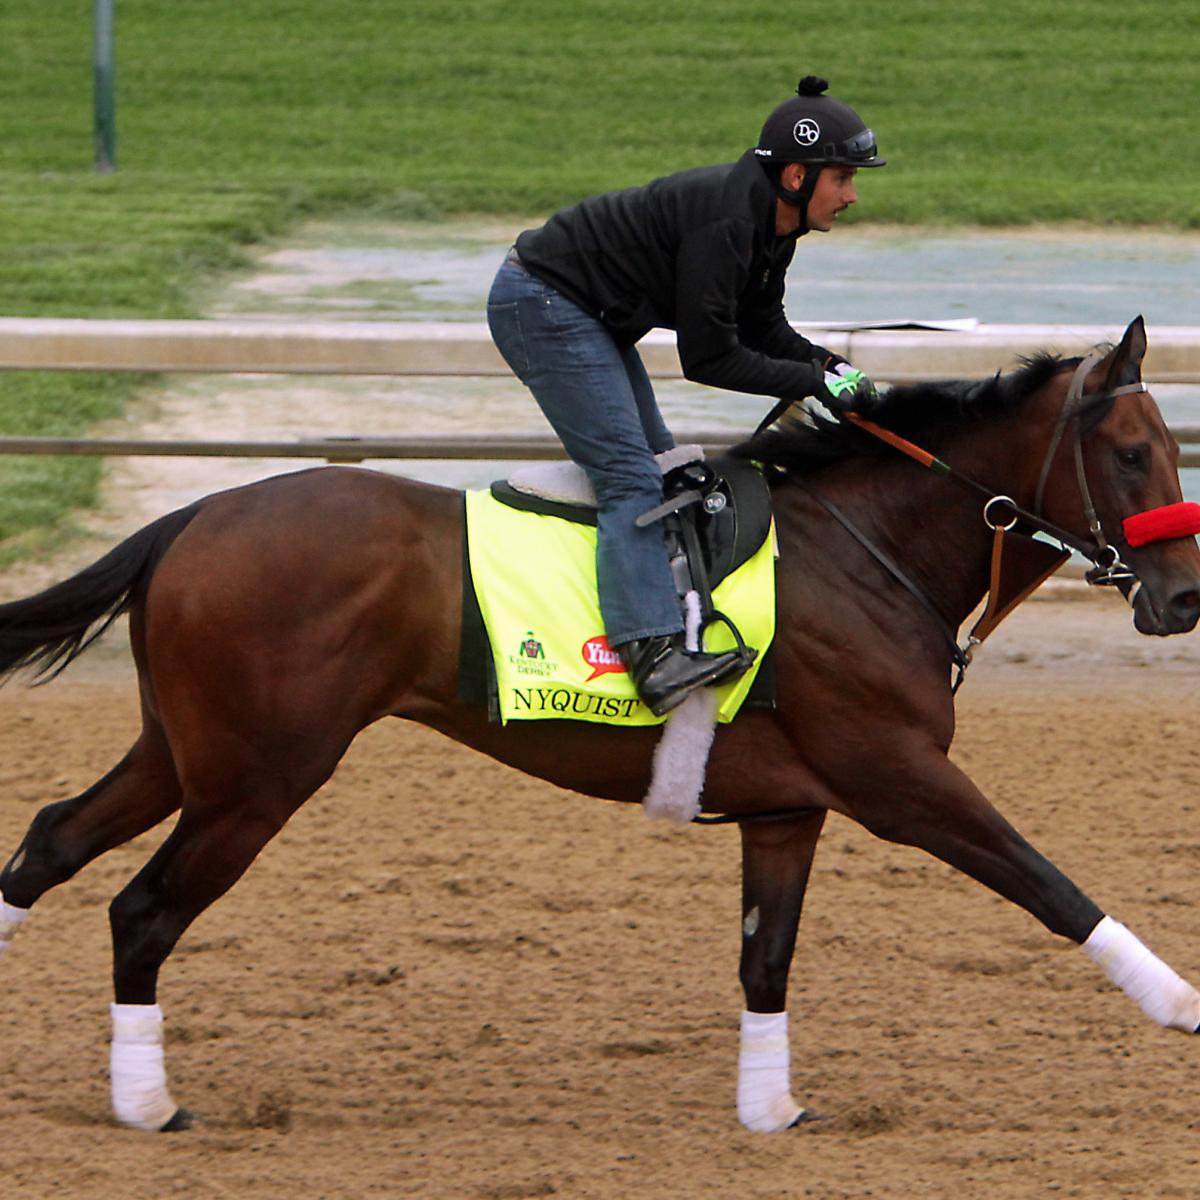 Kentucky Derby 2016 Jockeys And Horses Top Odds For 142nd